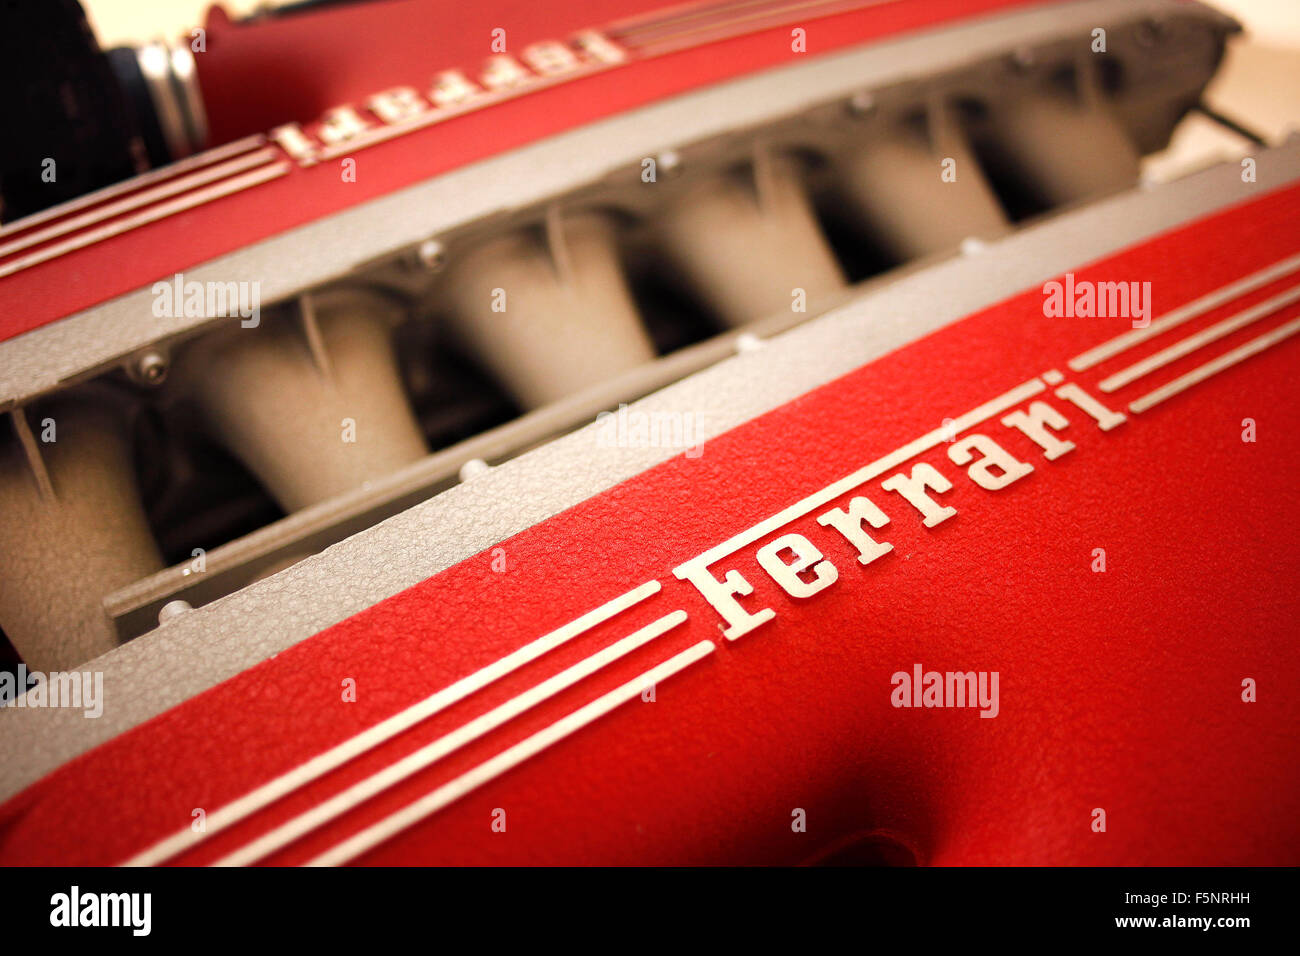 F140 FC engine on display at the Museo Ferrari in Maranello, Italy. - Stock Image